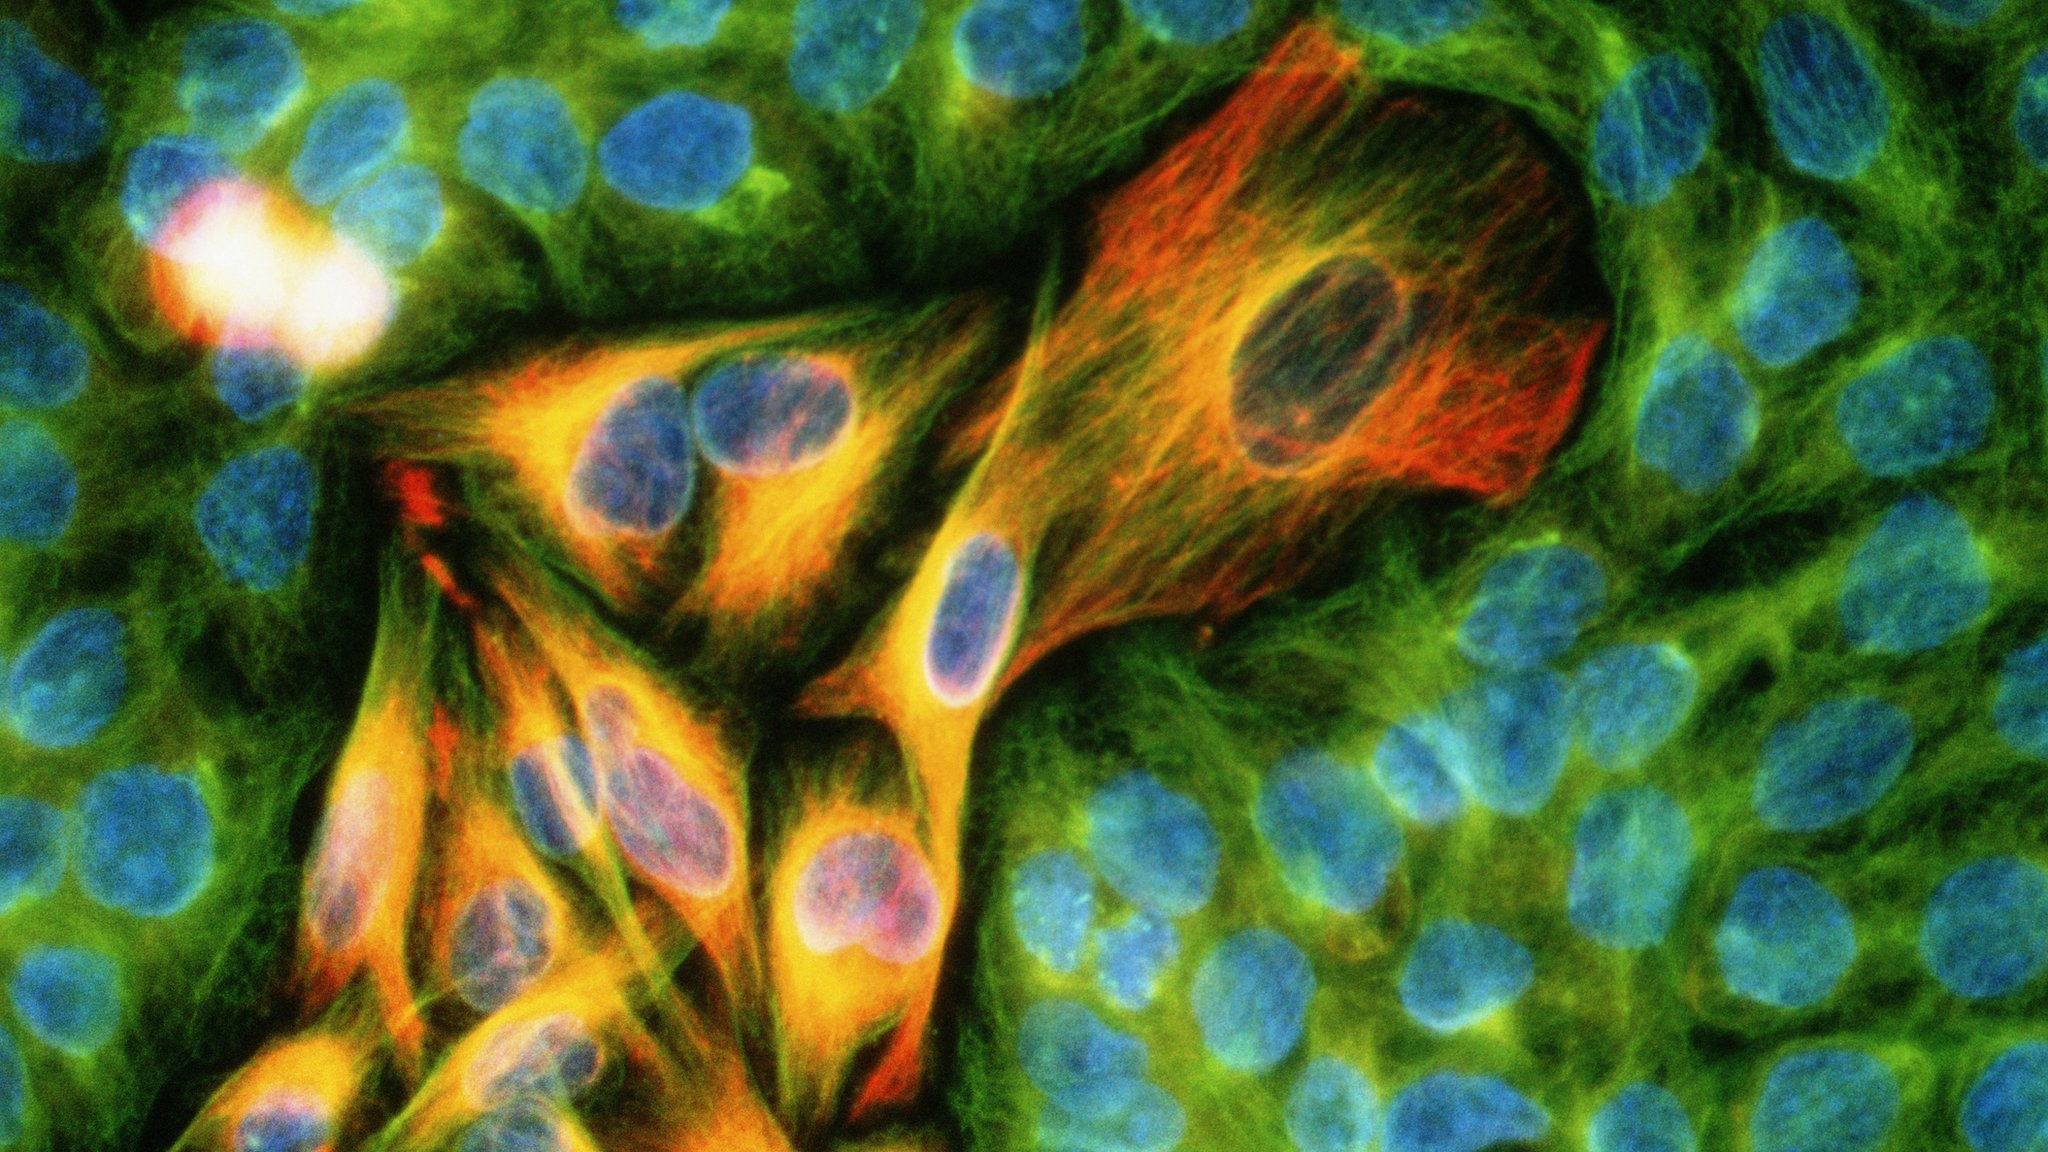 Pioneering cancer drug combination approved